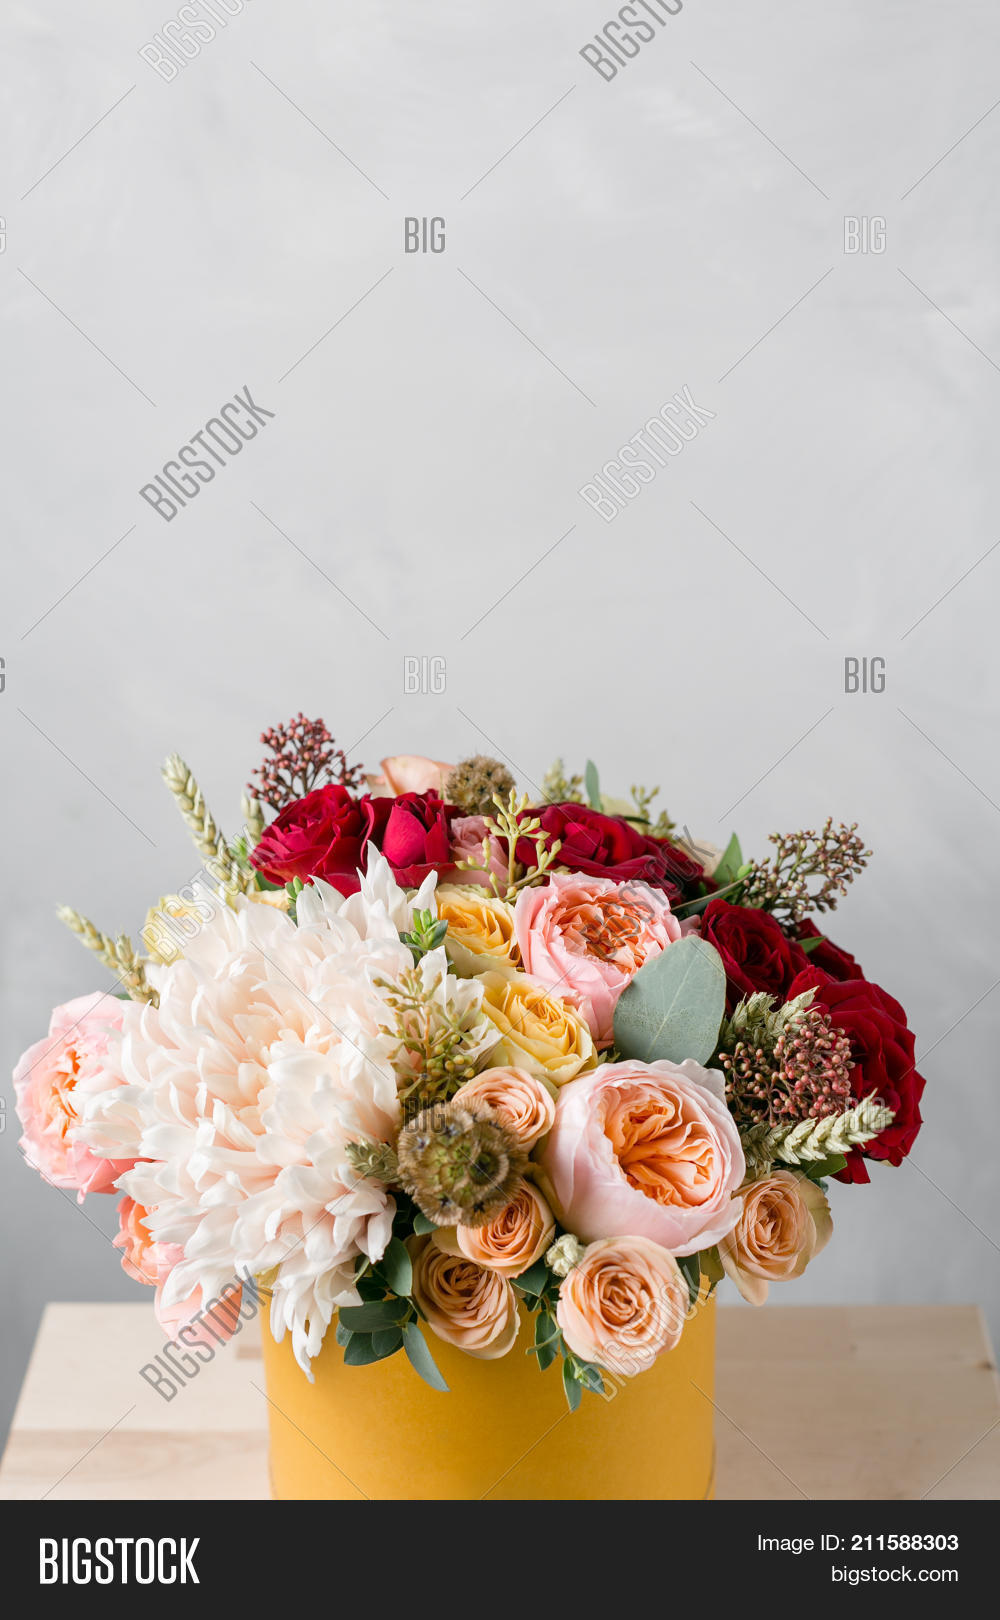 Flowers round luxury image photo free trial bigstock flowers in round luxury present box bouquet of mixed flowers in yelow paper box izmirmasajfo